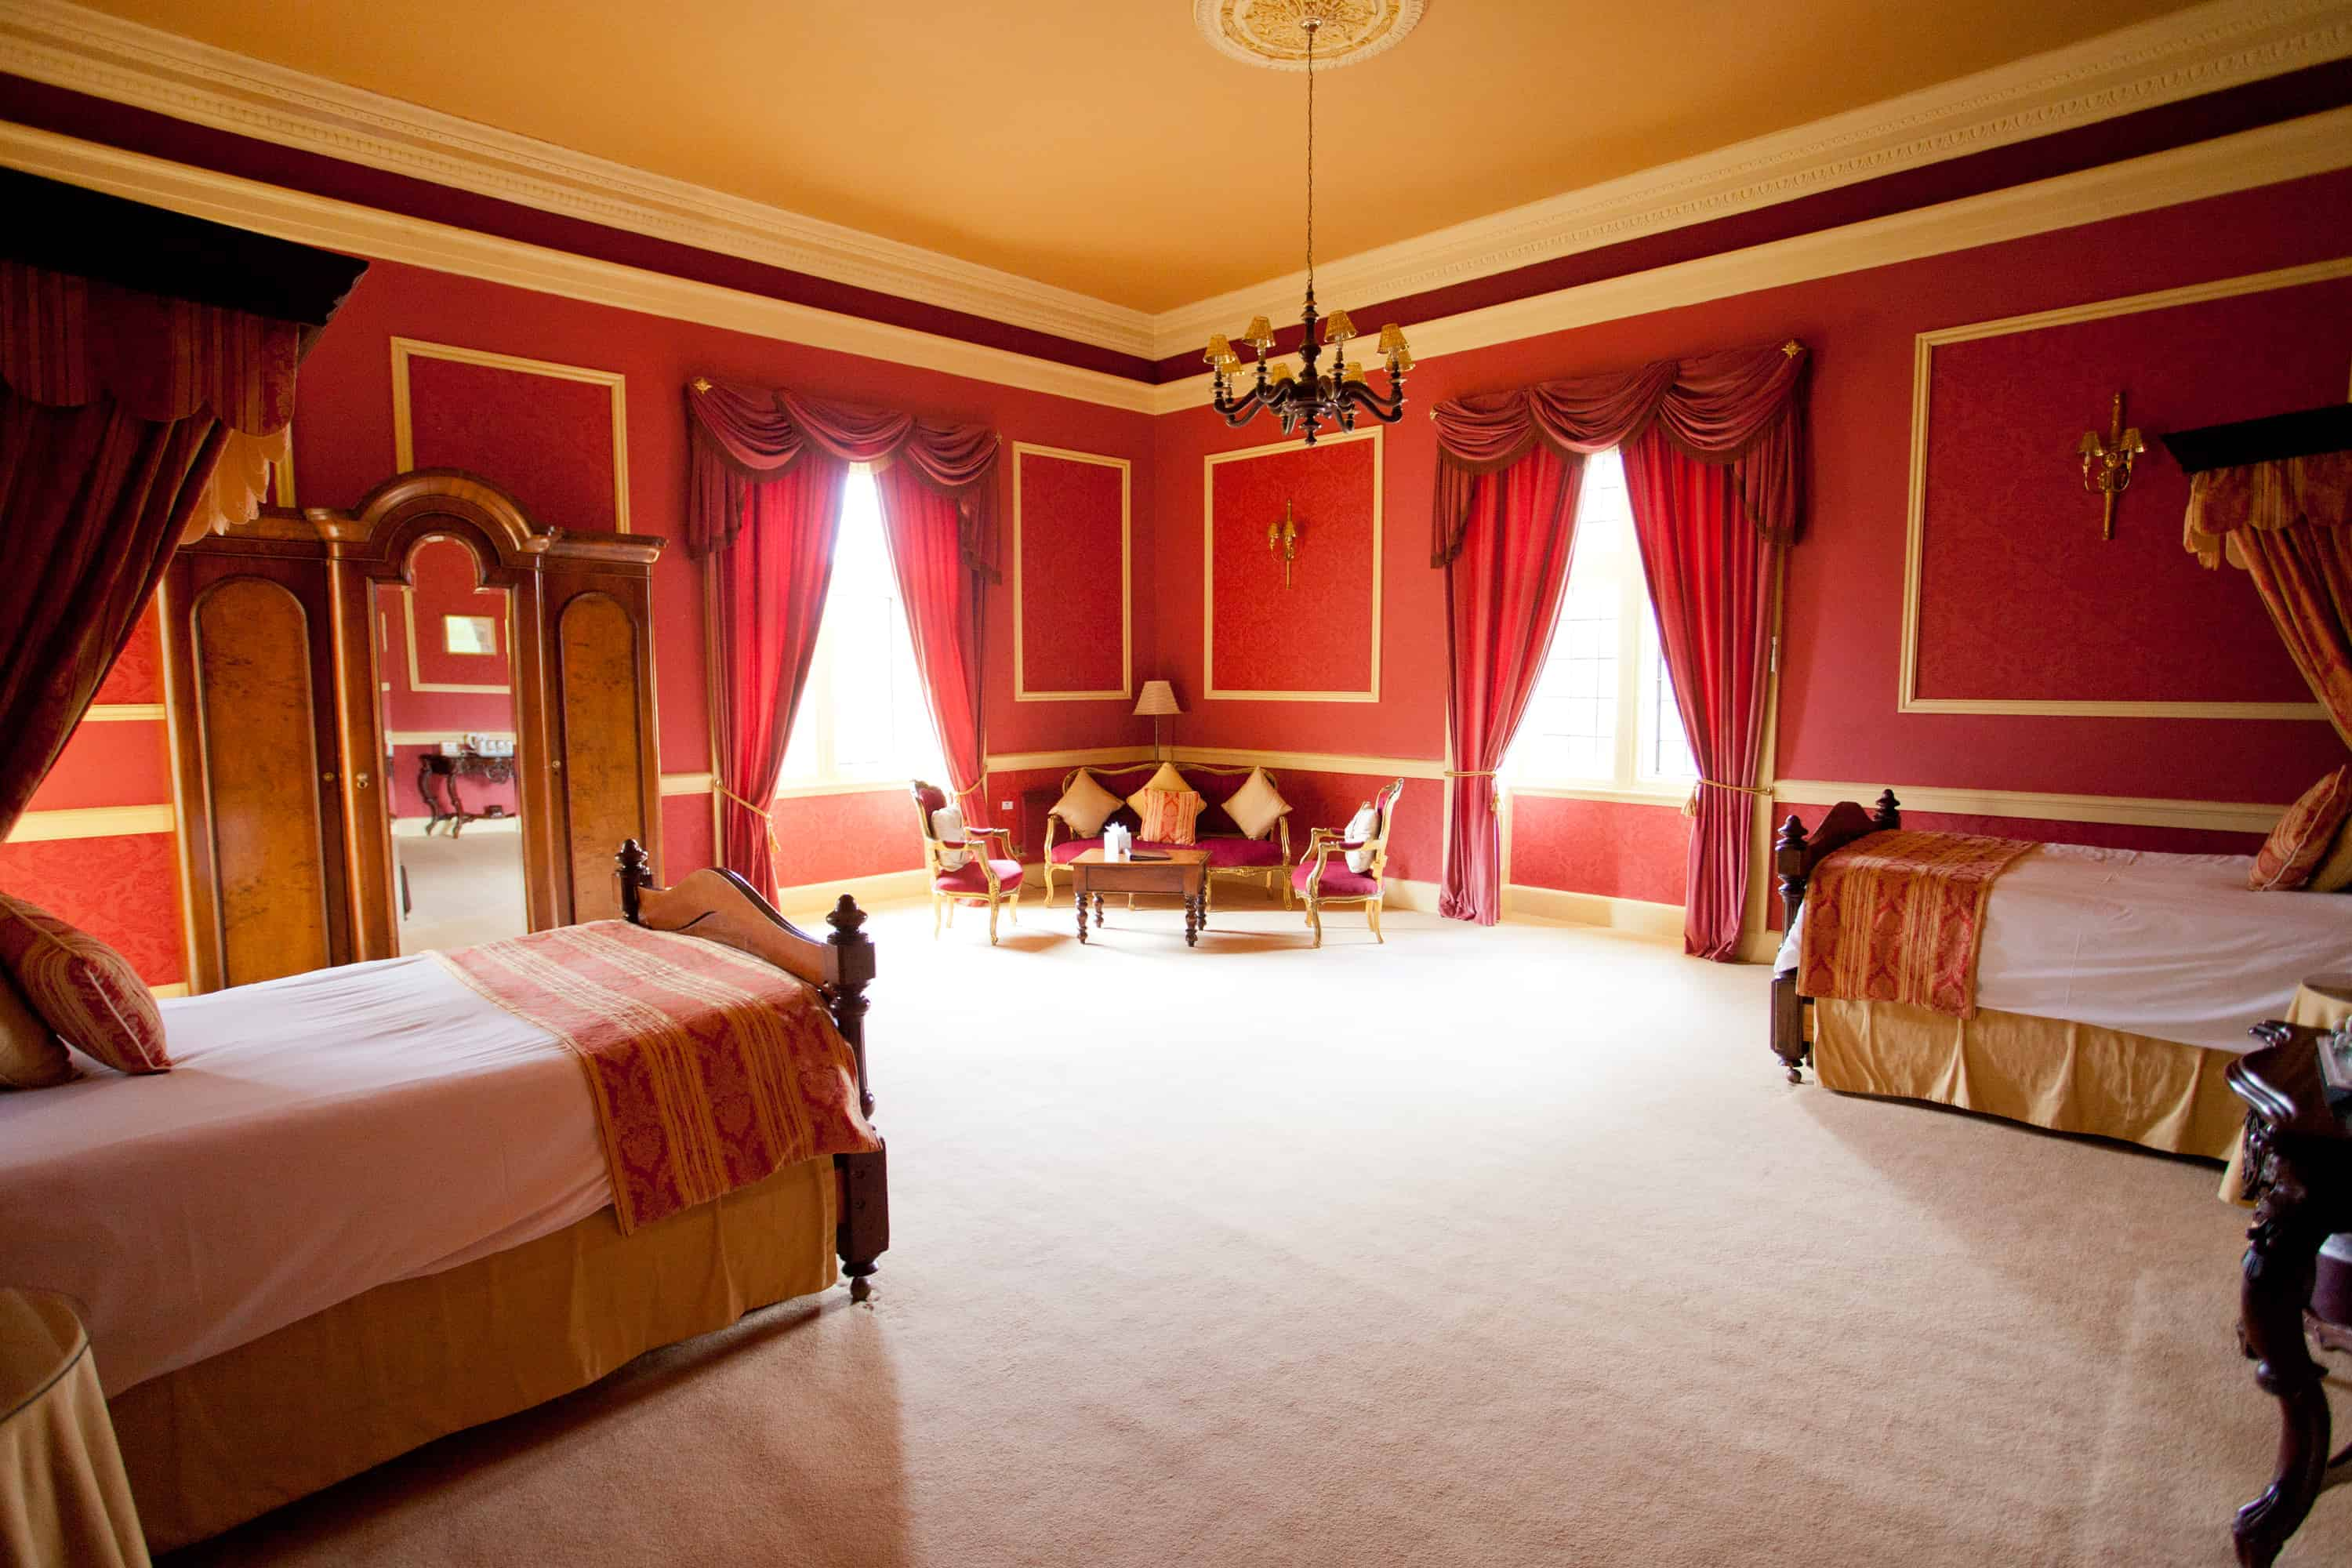 Clearwell Castle - Baynham Suite